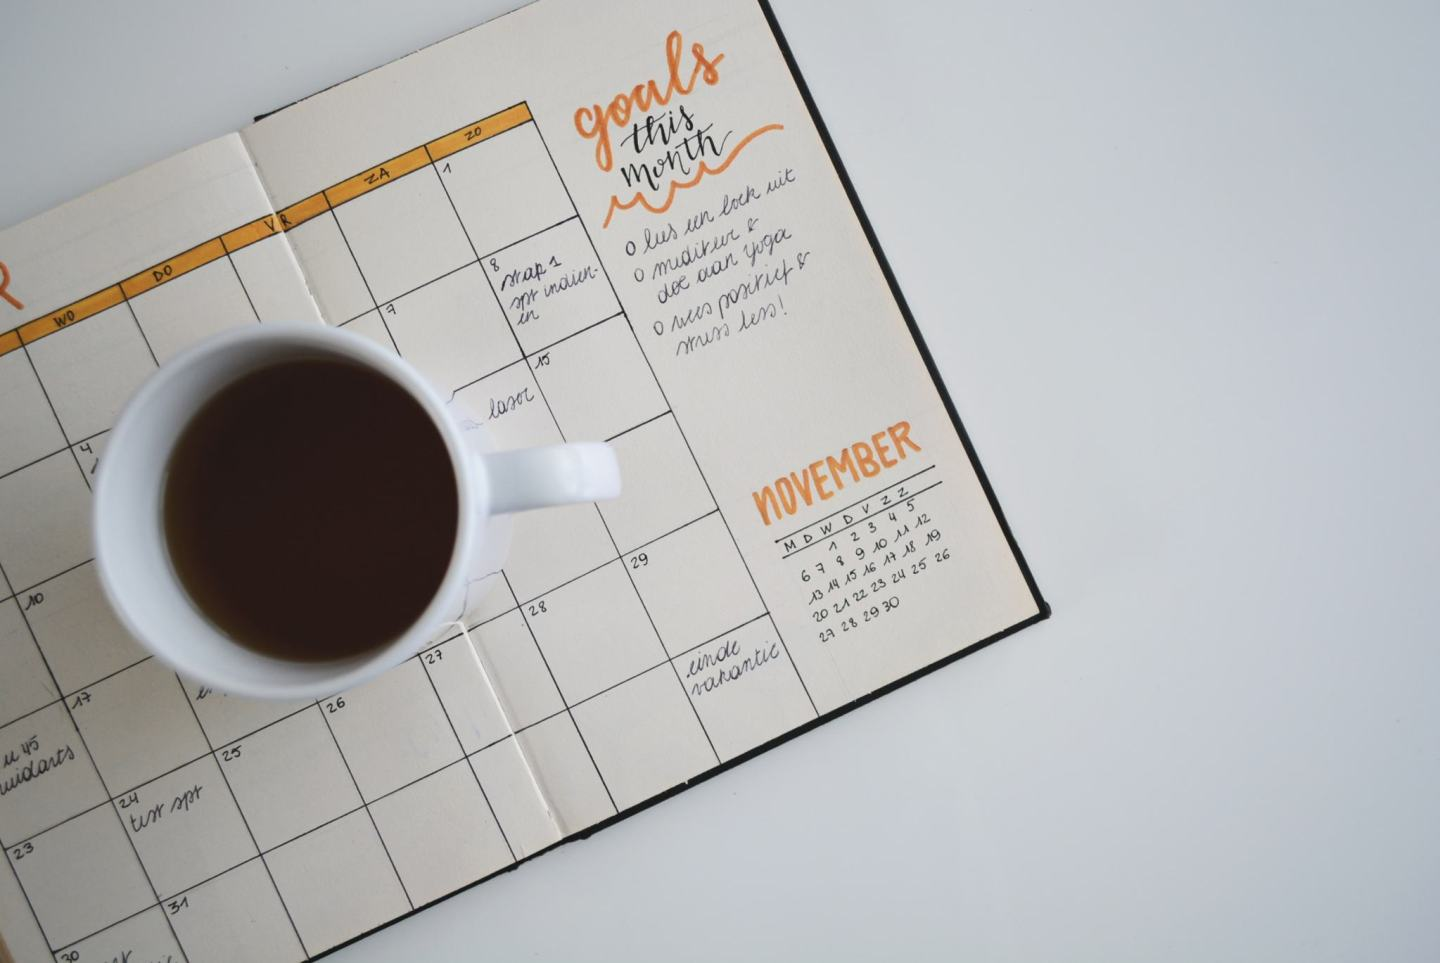 photo of a planner showing set goals good habits for switching up your life